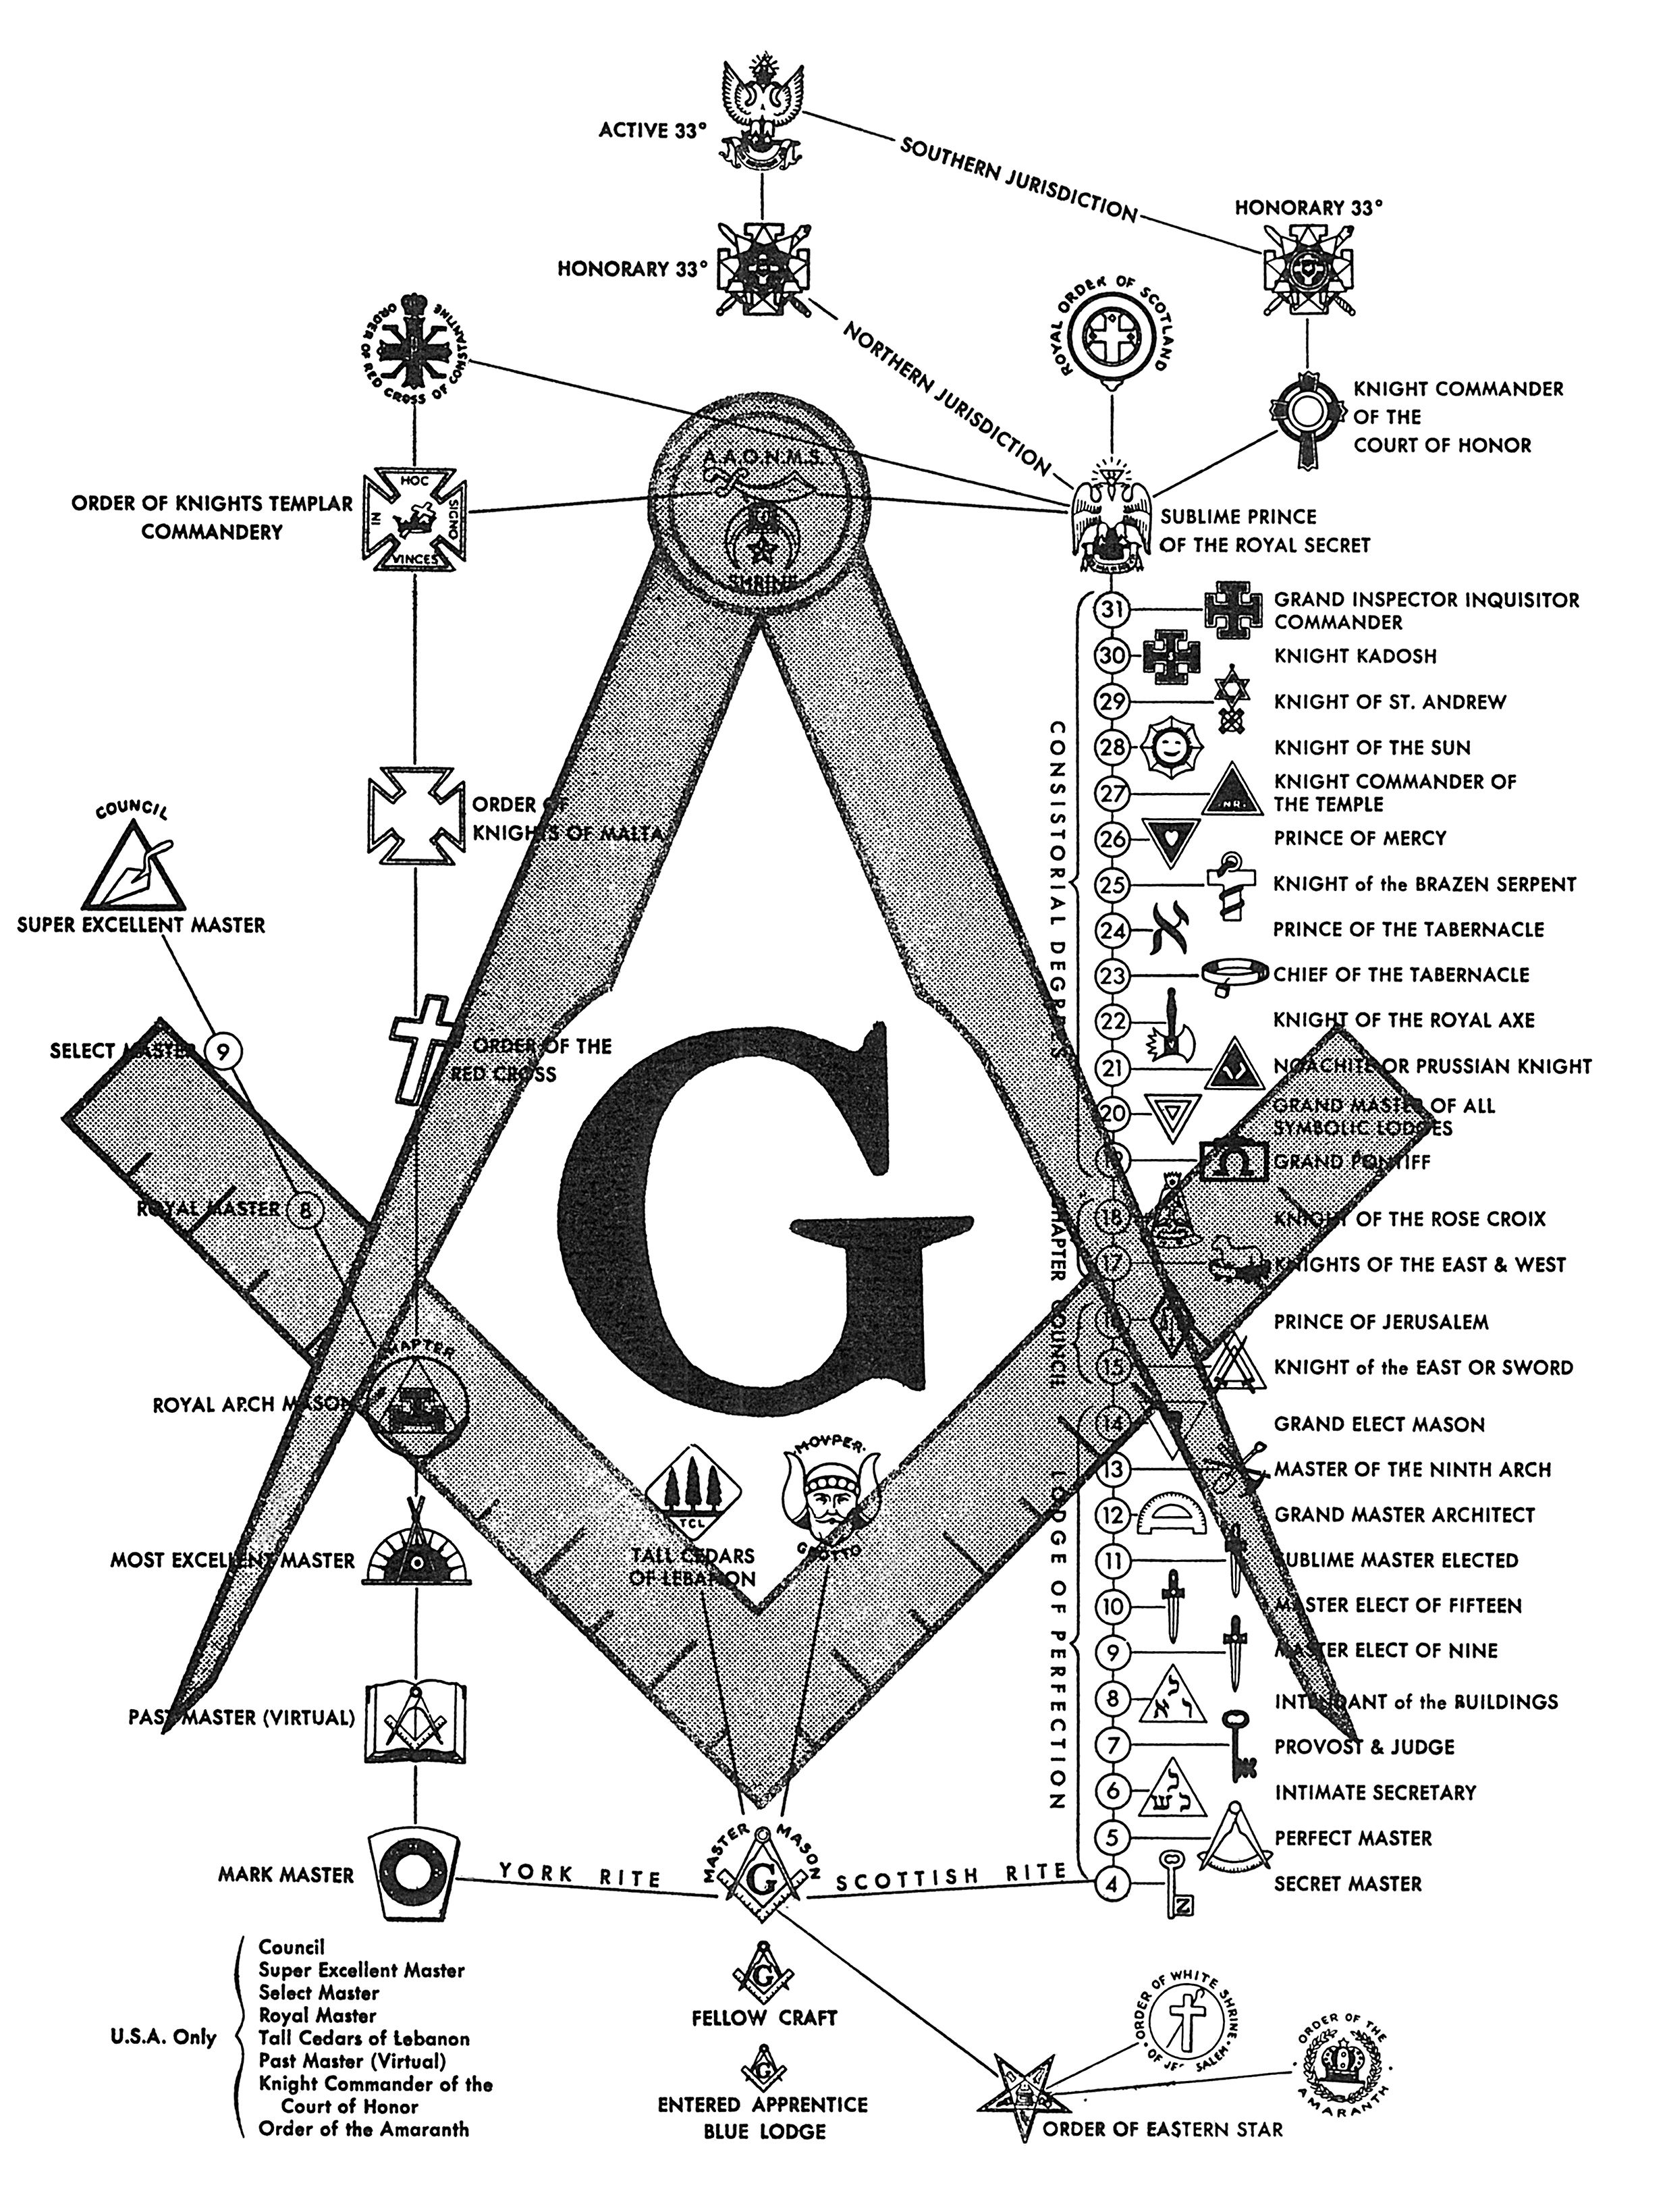 this is just ridiculous but my favorite symbol might be 28 masonic order